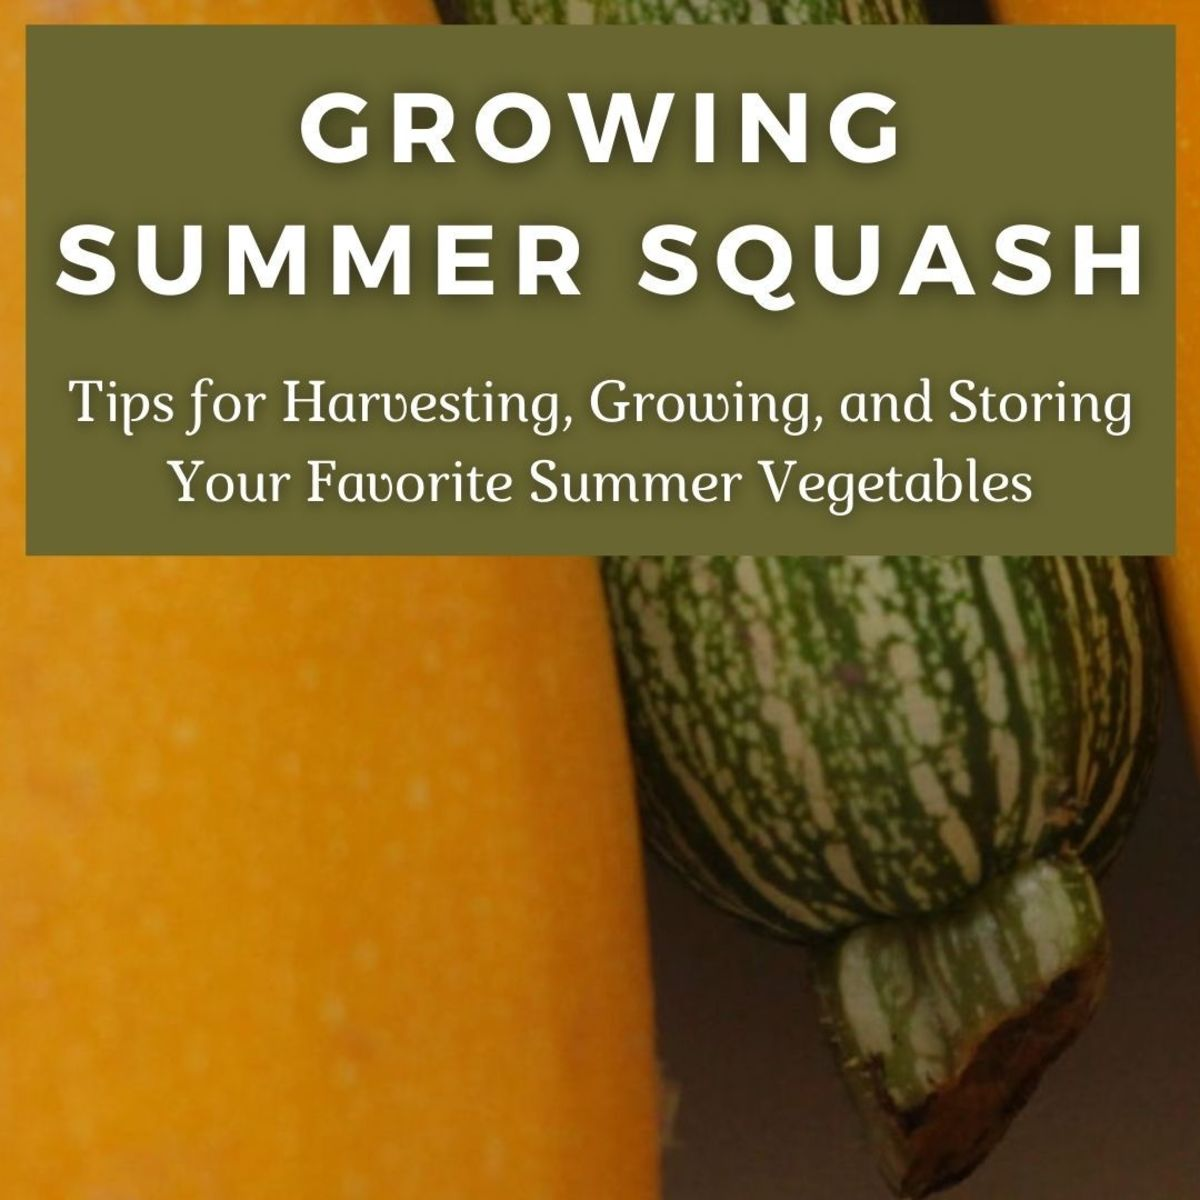 The four major types of summer squash are zucchini, yellow straightneck, yellow crookneck, and scallop.